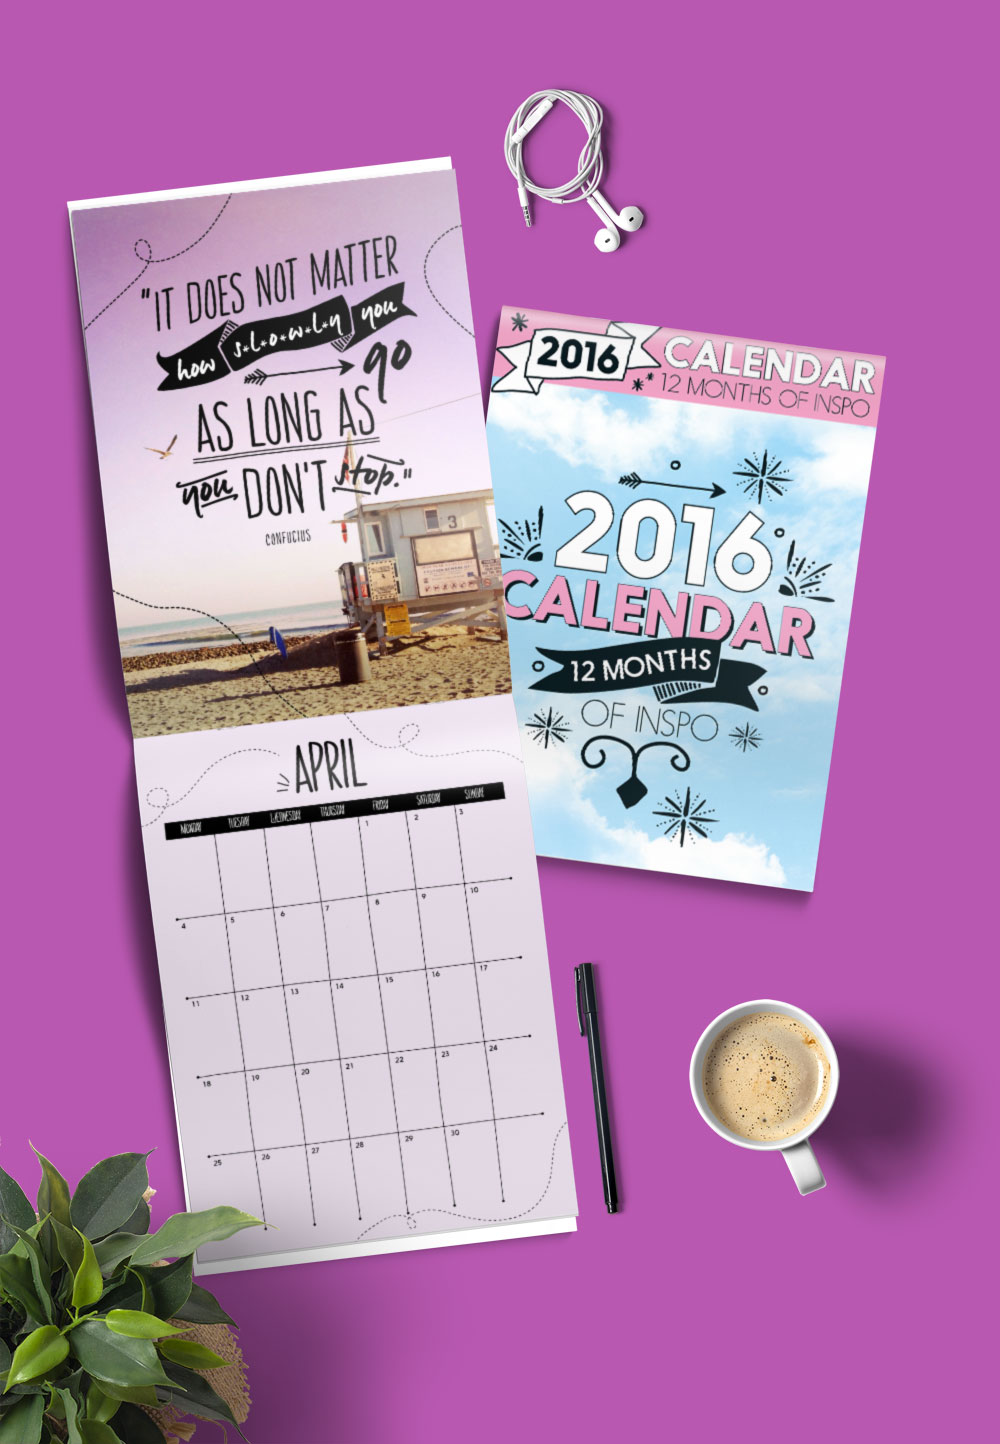 One Year Calendar Design